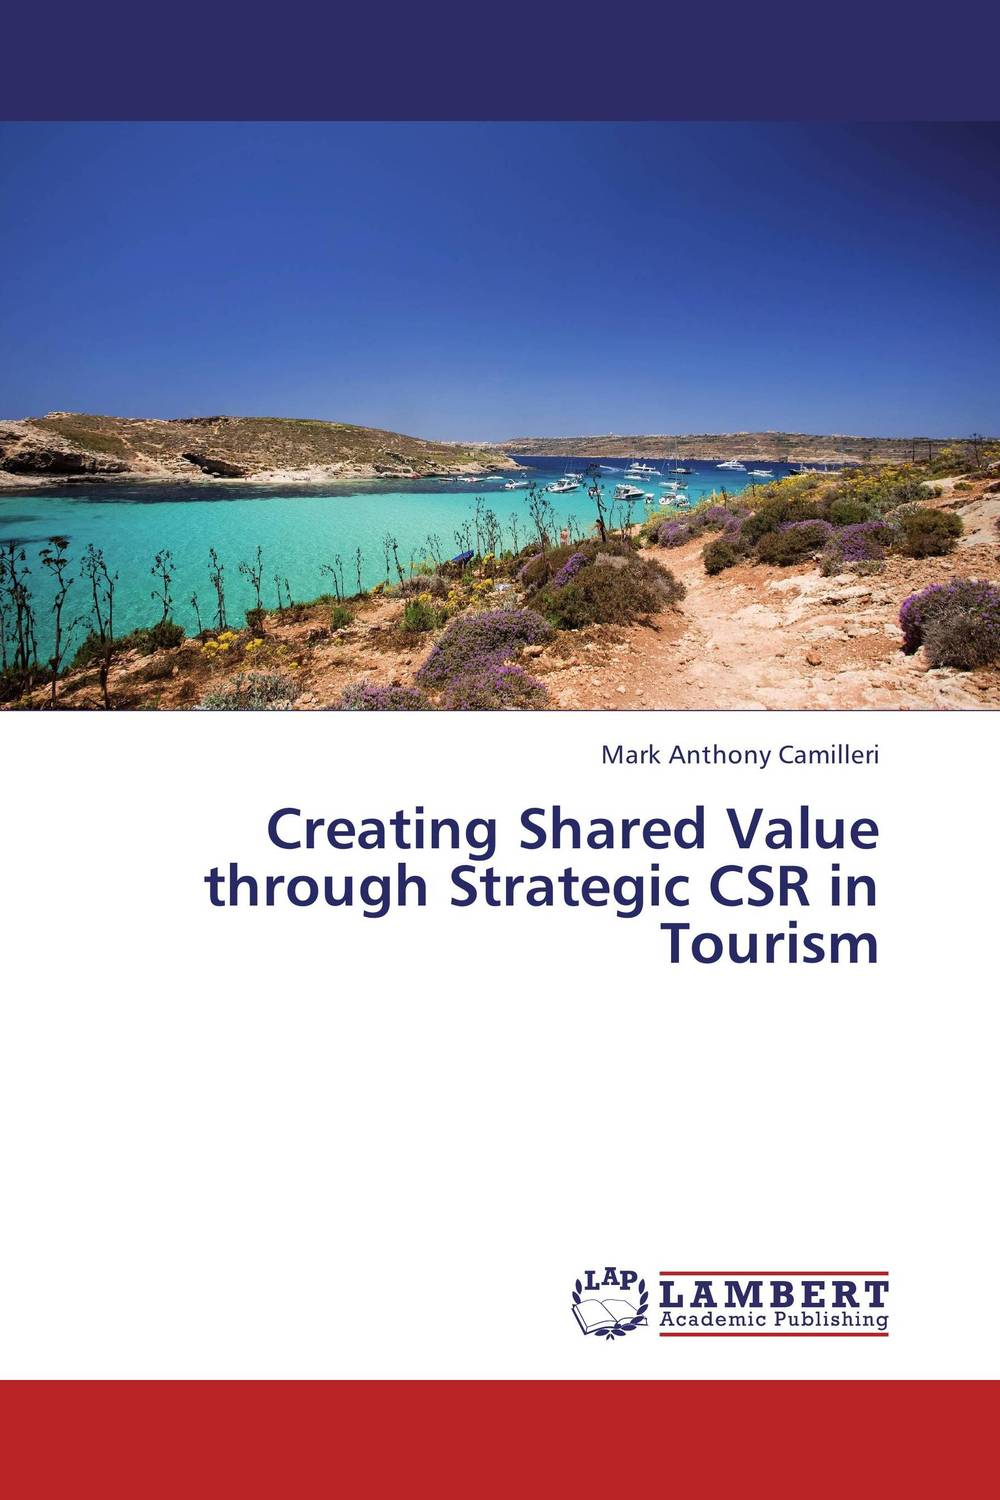 Creating Shared Value through Strategic CSR in Tourism